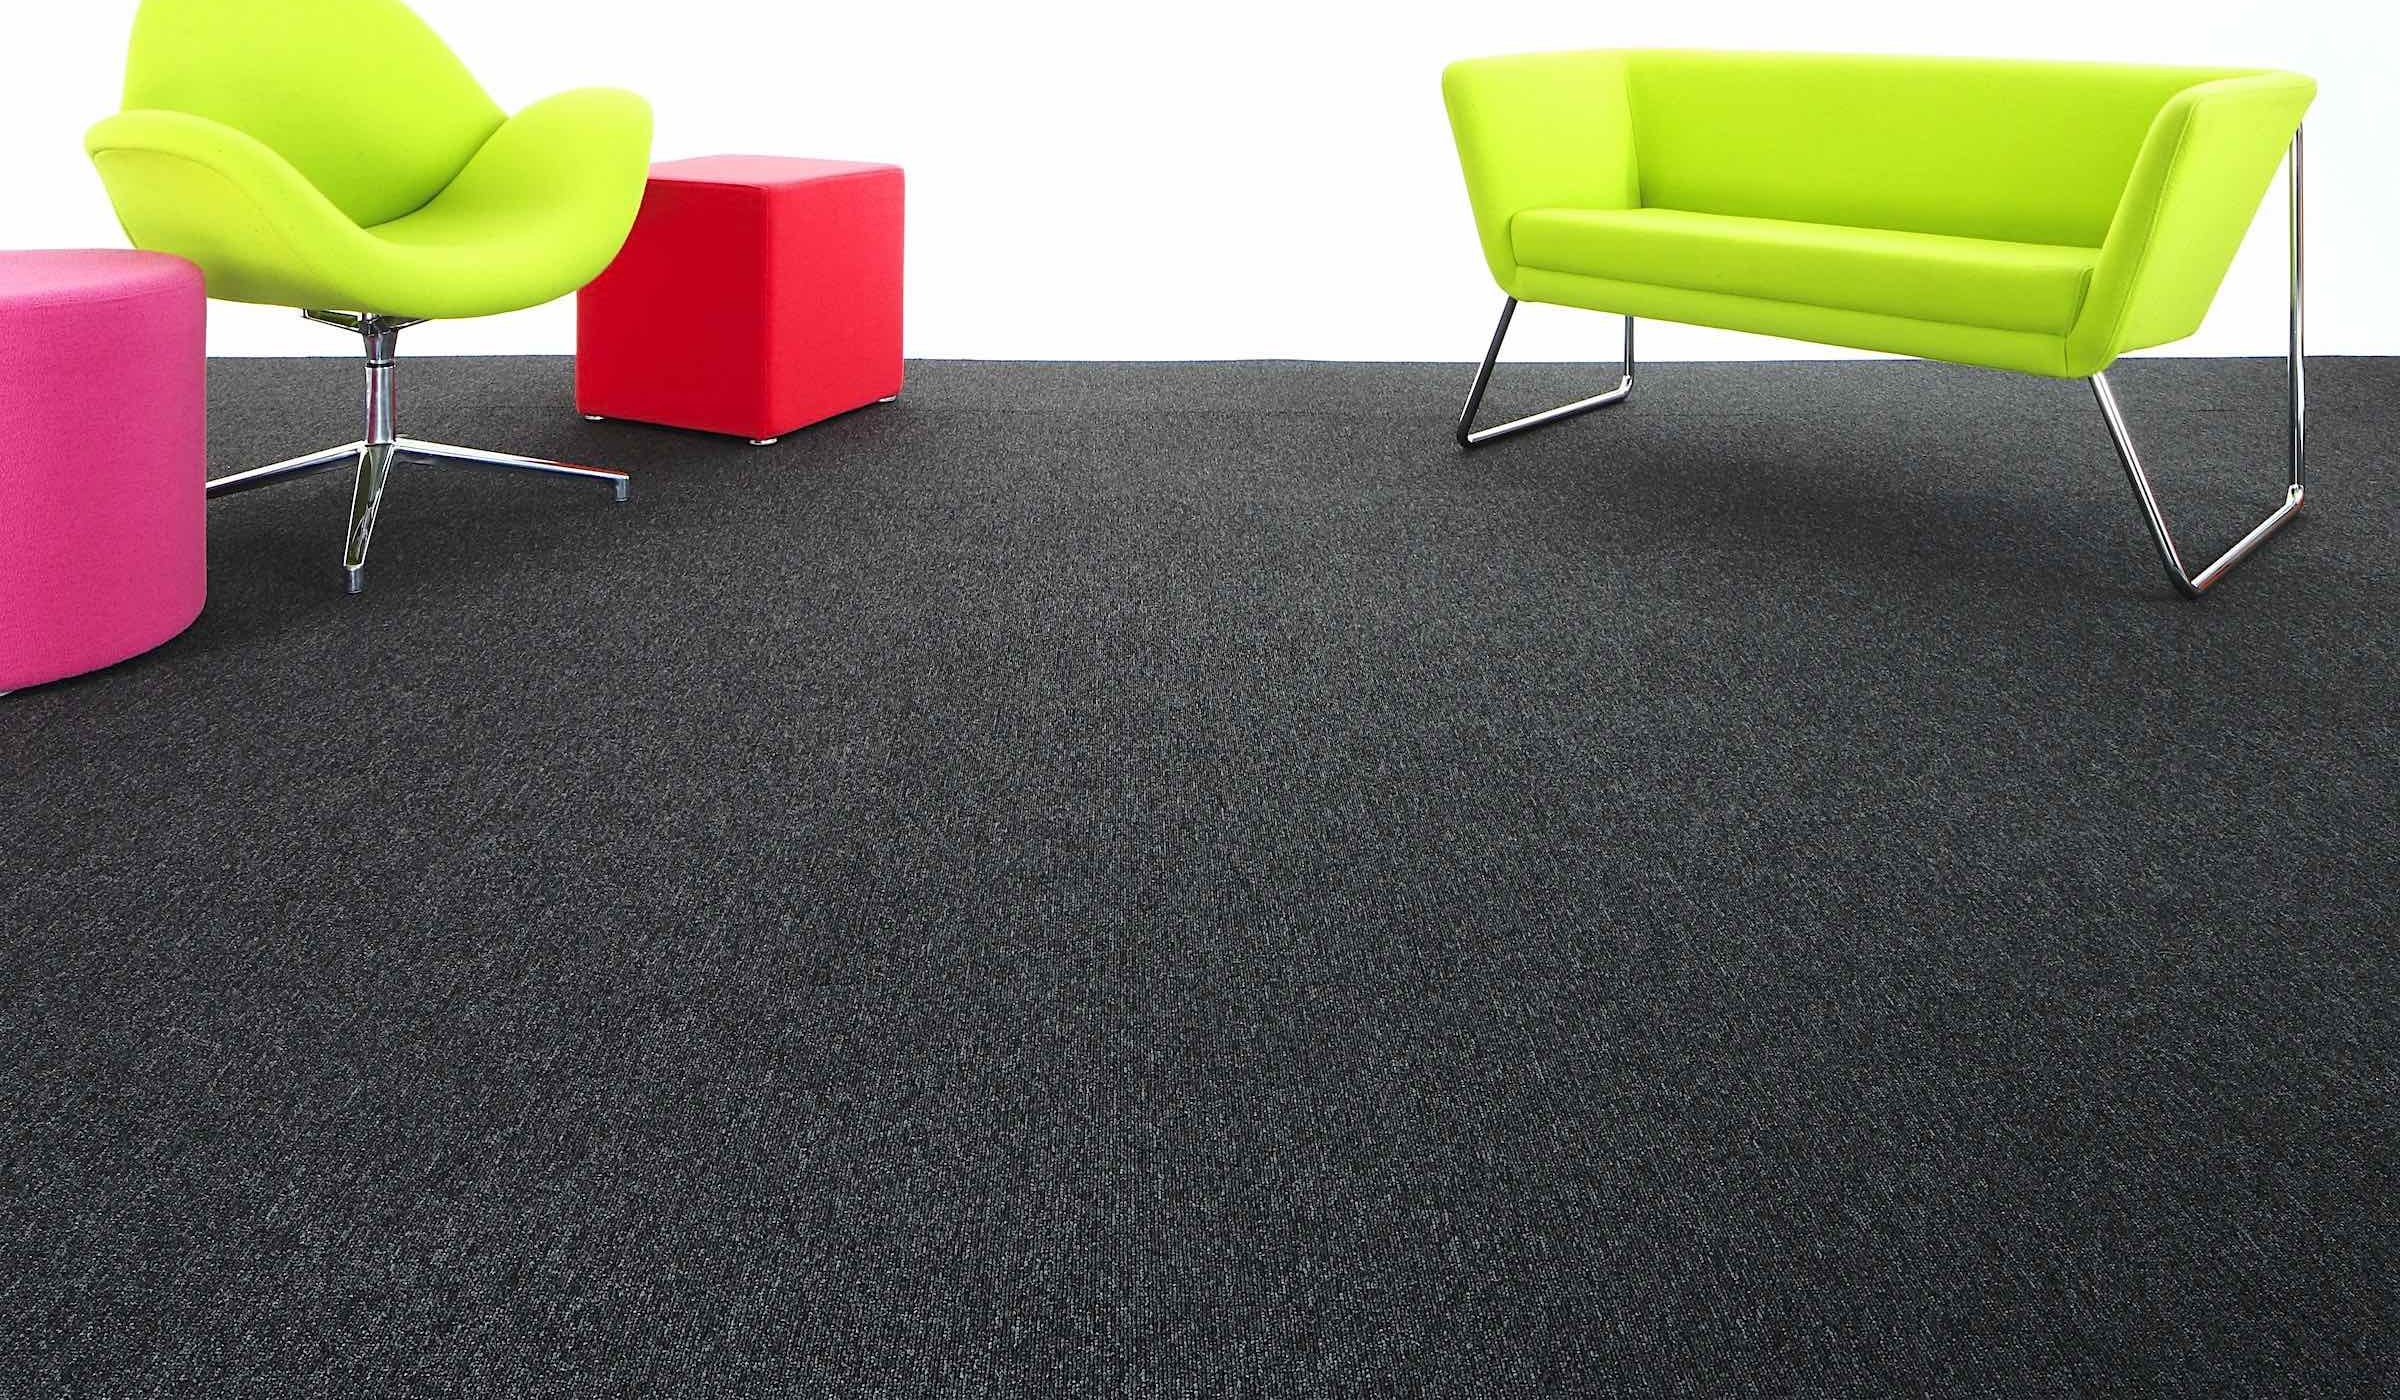 Macaw | Paragon Carpet Tiles | Commercial Carpet Tiles | Design Carpet Tiles 3